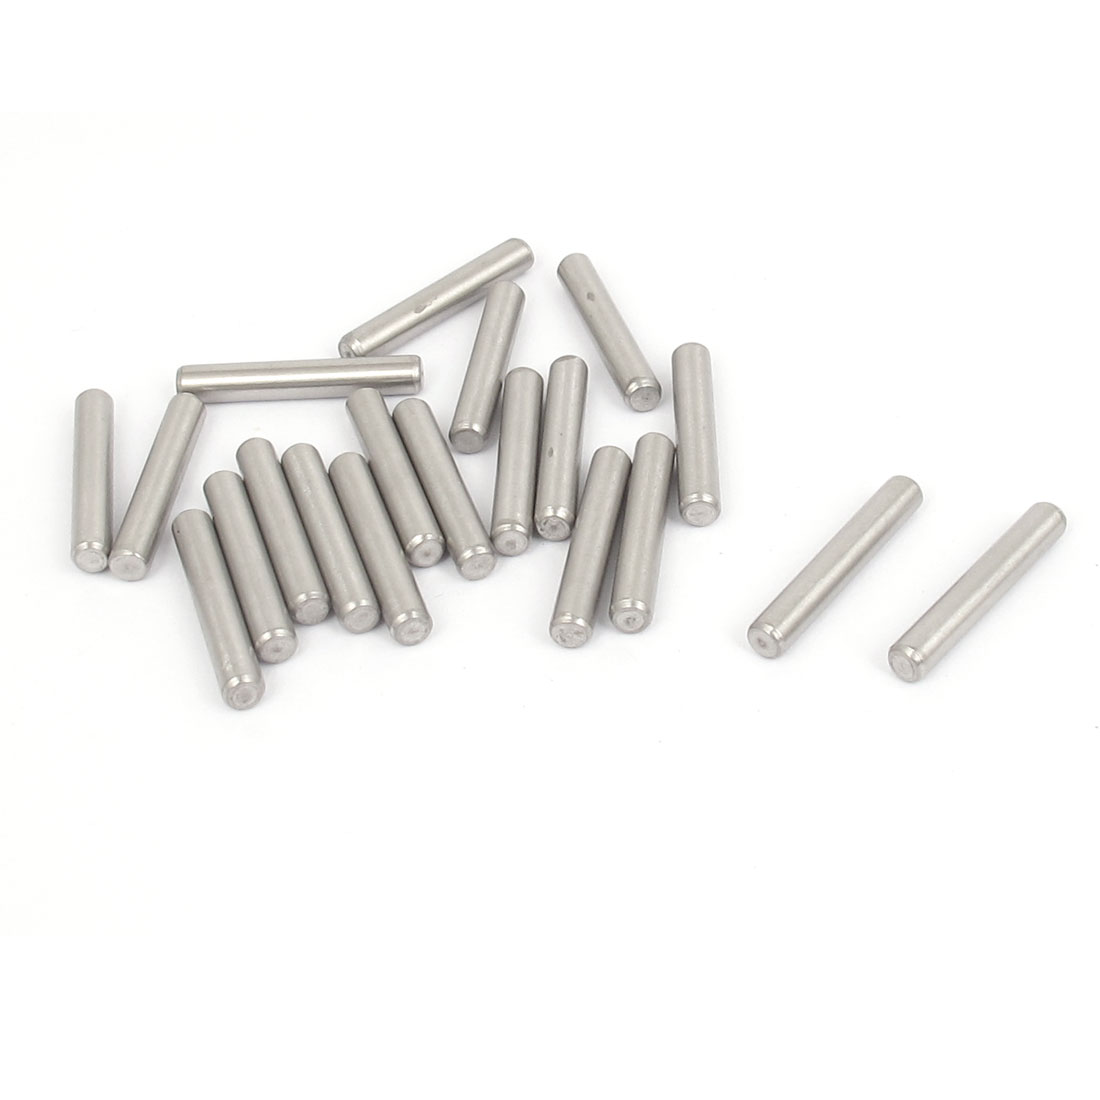 4mmx25mm 304 Stainless Steel Parallel Dowel Pins Fastener Elements 20pcs